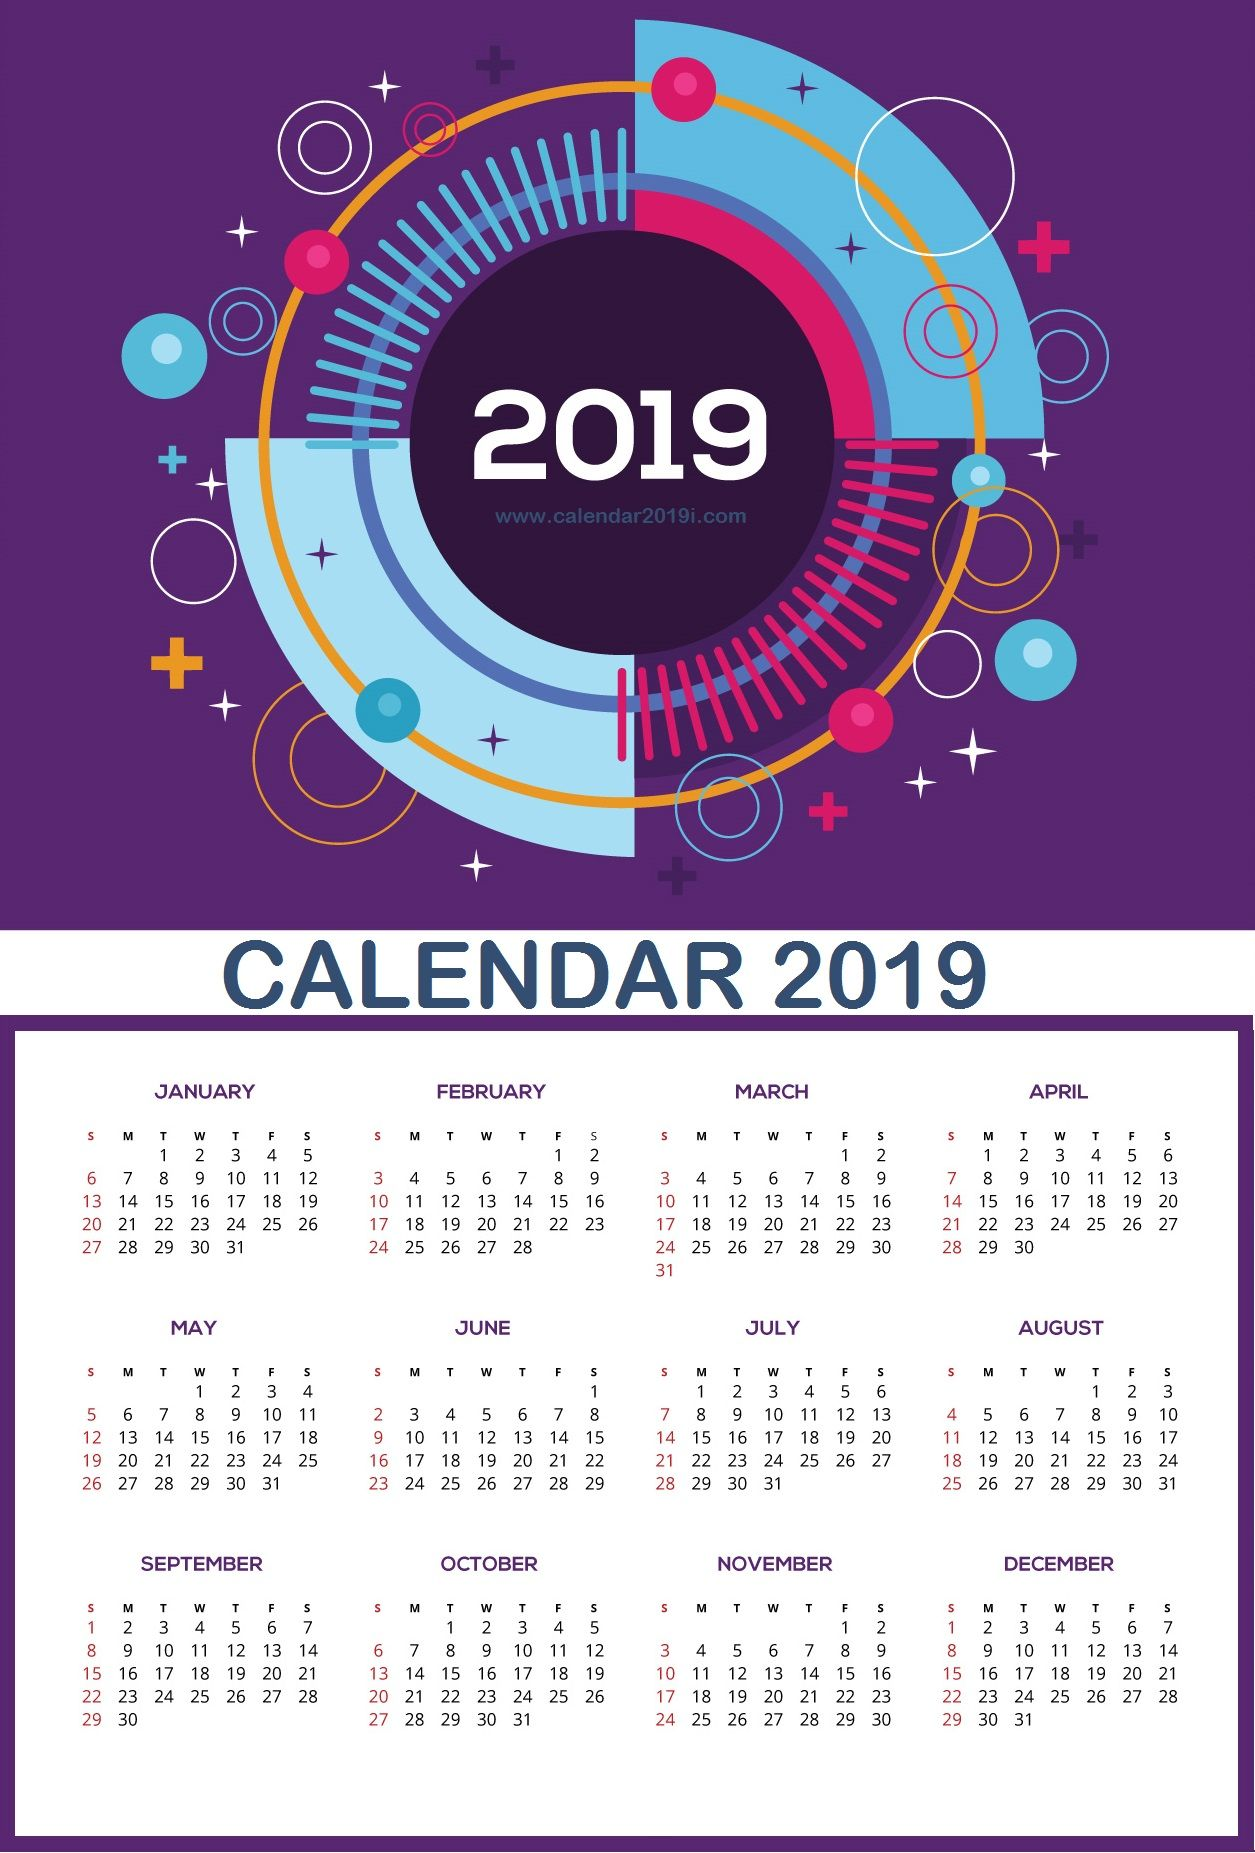 Wall Calendars 2019 Large Wall Calendar 2019 | planner | Wall calendar design, Monthly